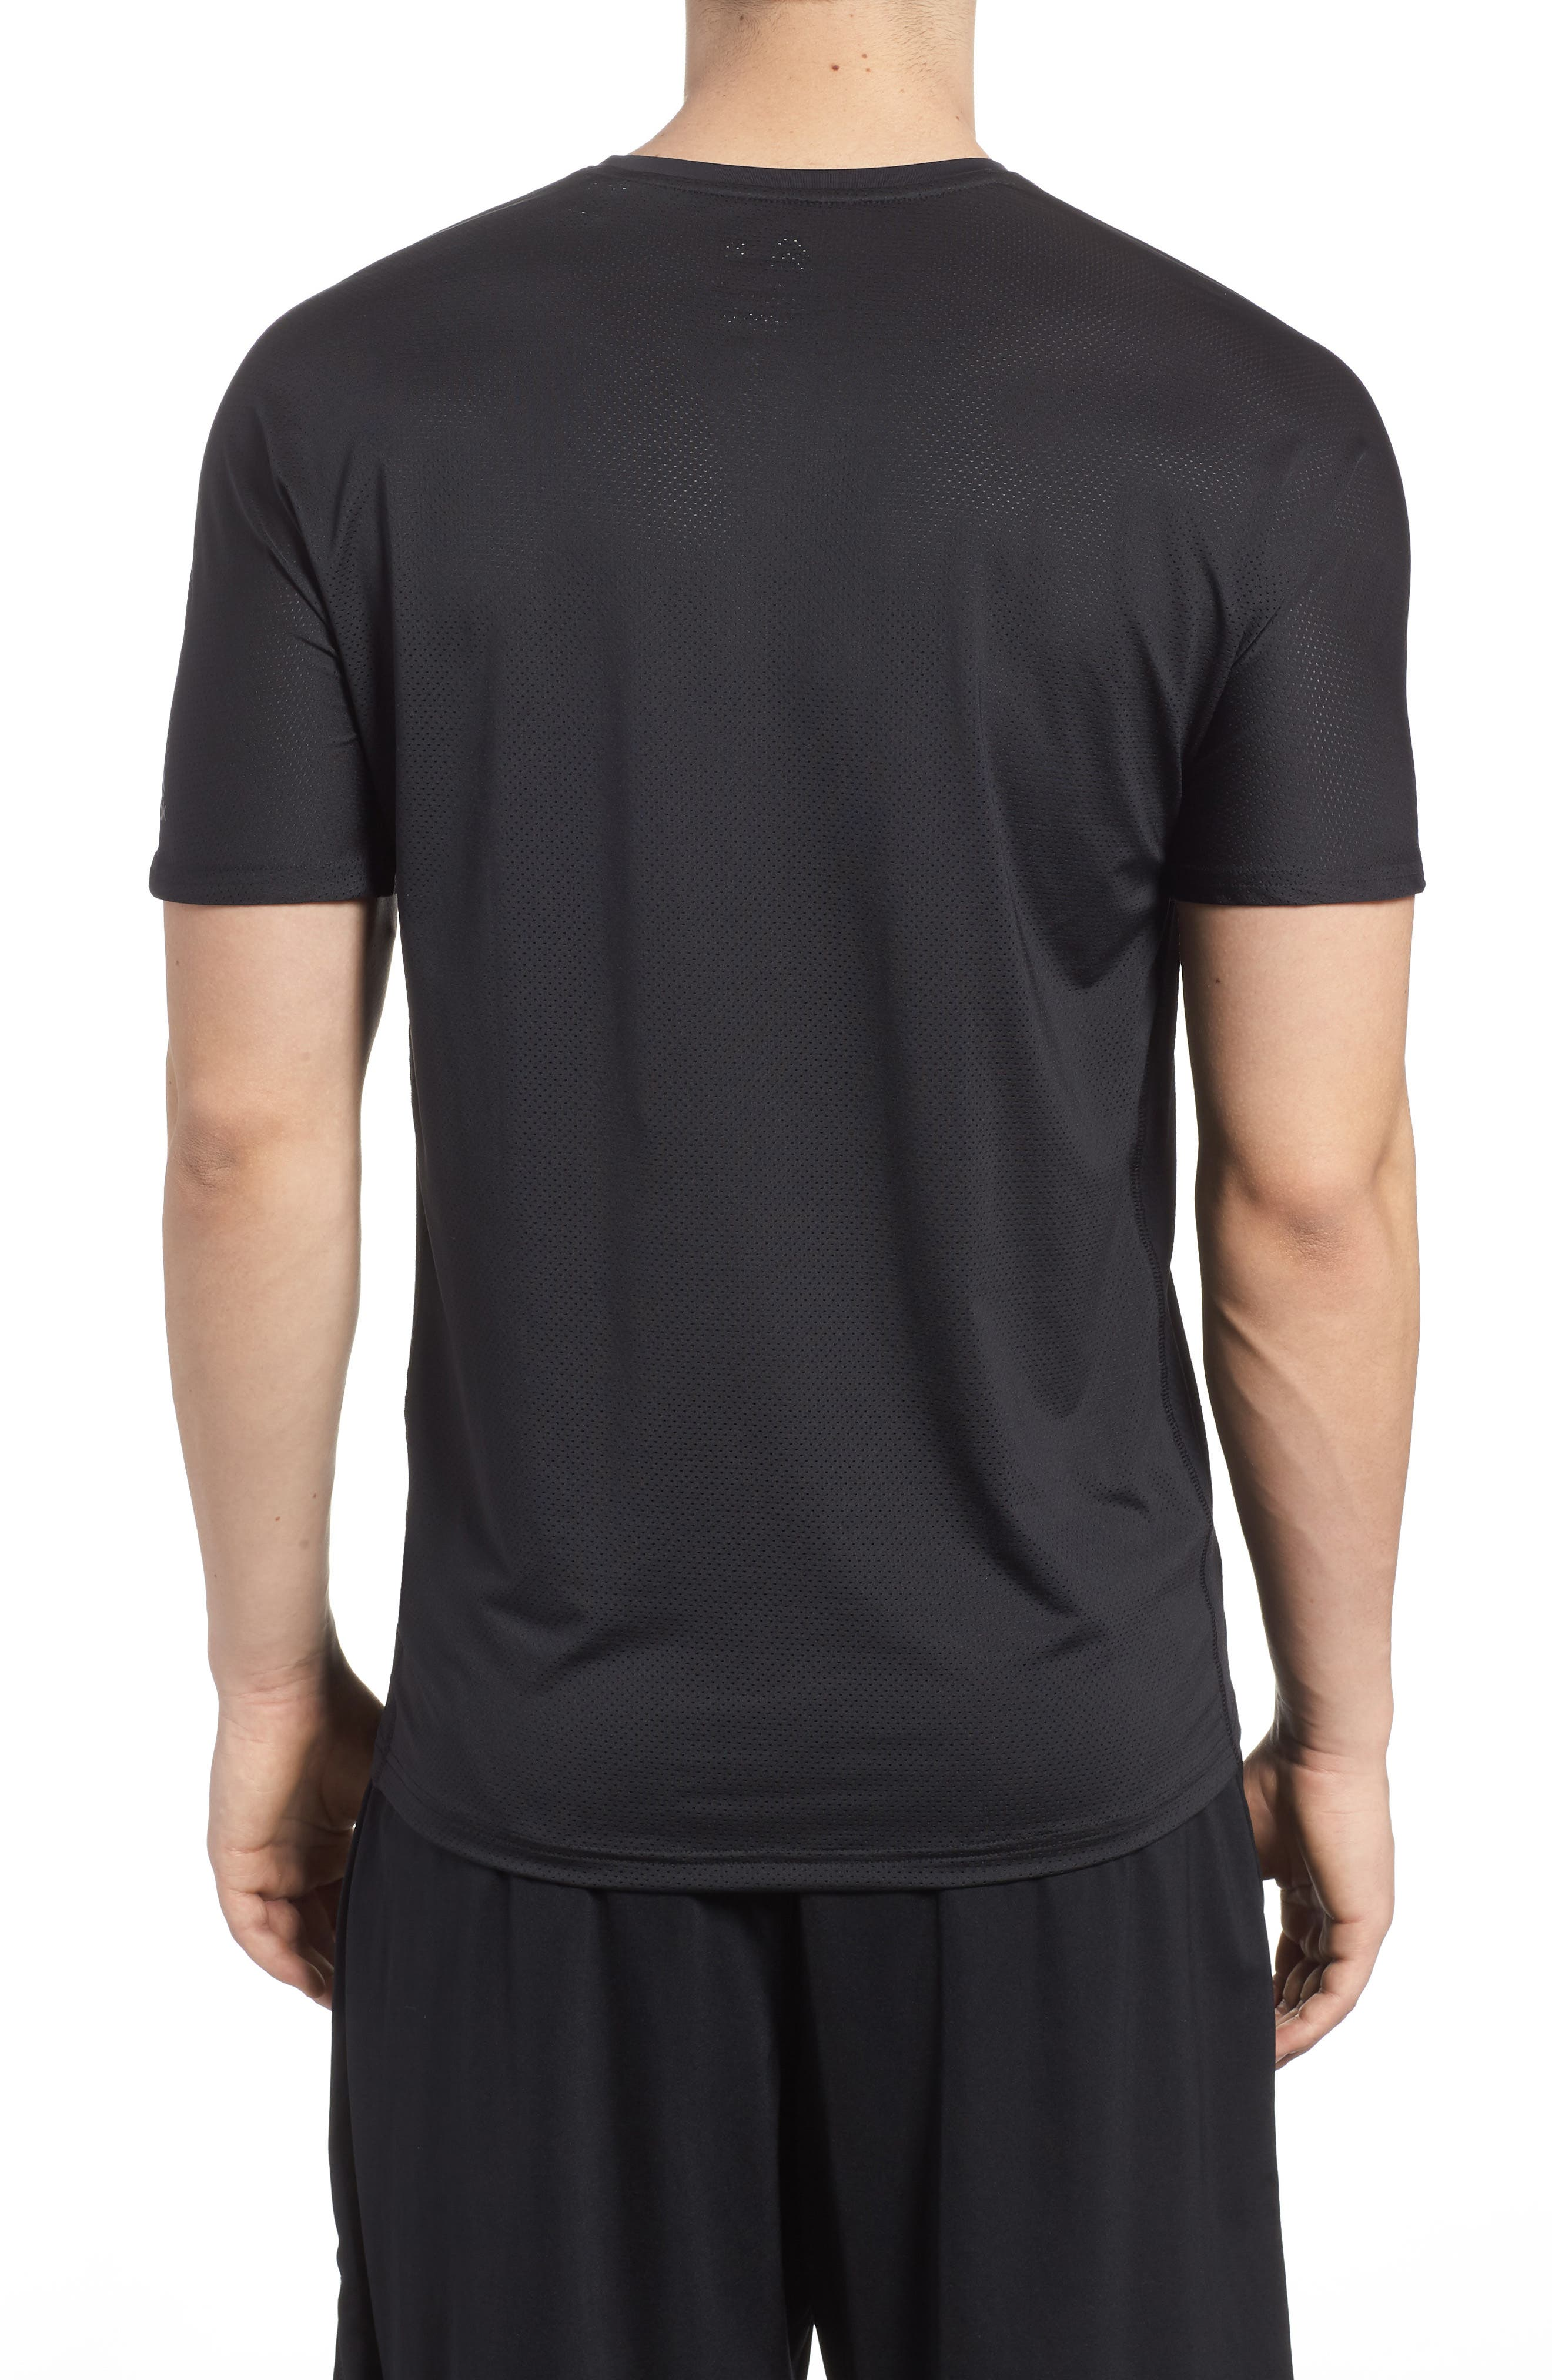 ACTIVCHILL Vent Move Crewneck T-Shirt,                             Alternate thumbnail 2, color,                             Black